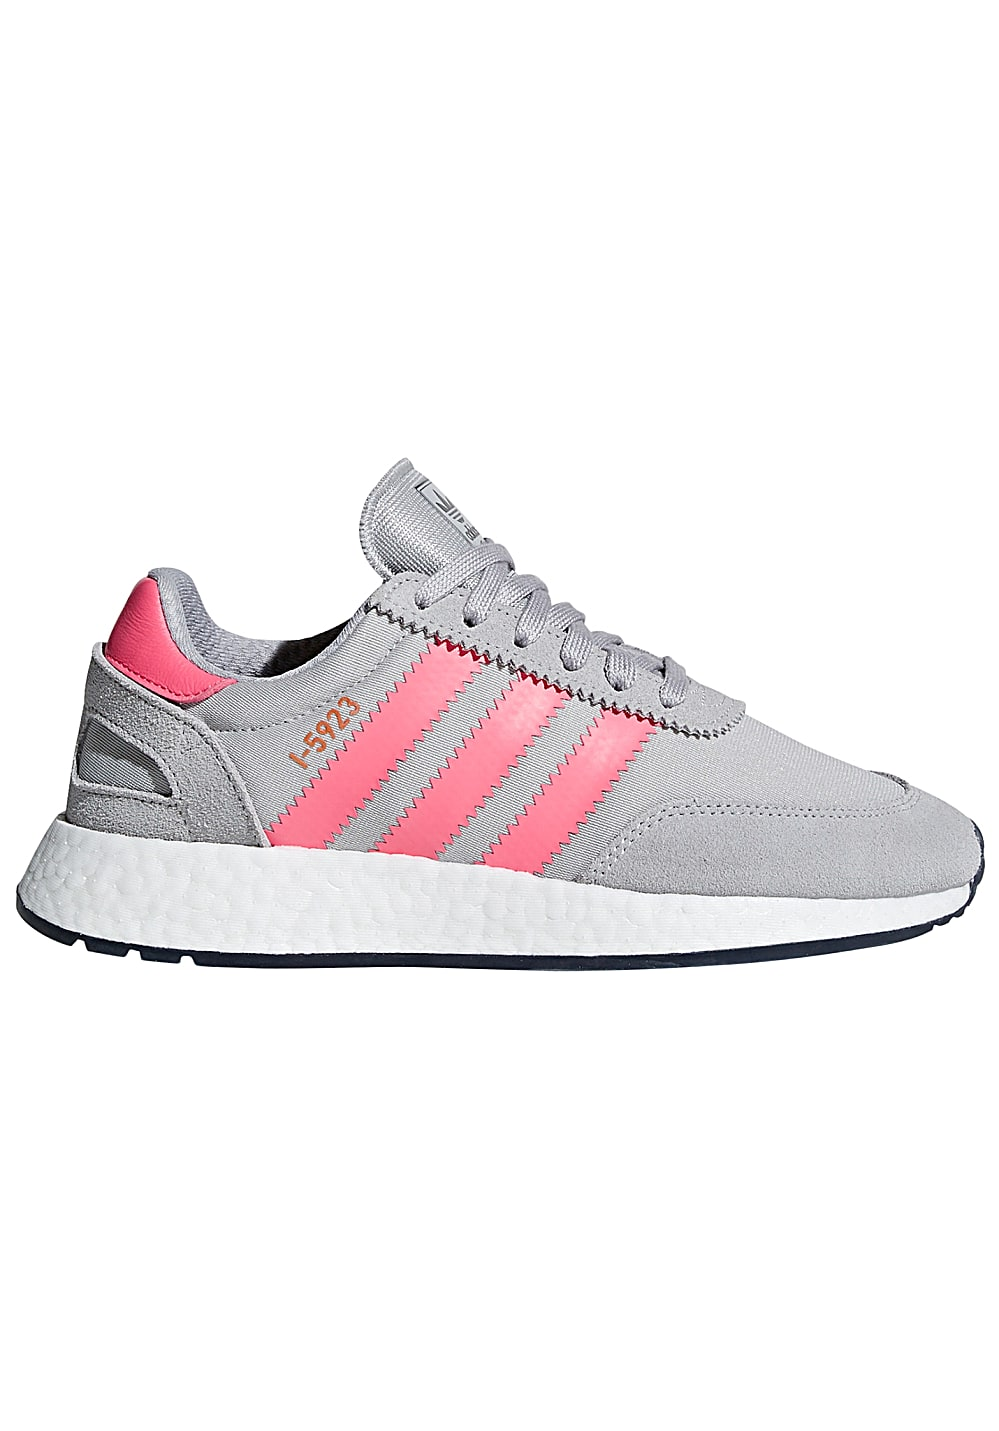 adidas Originals Damen I 5923 Sneakers Hellgrau